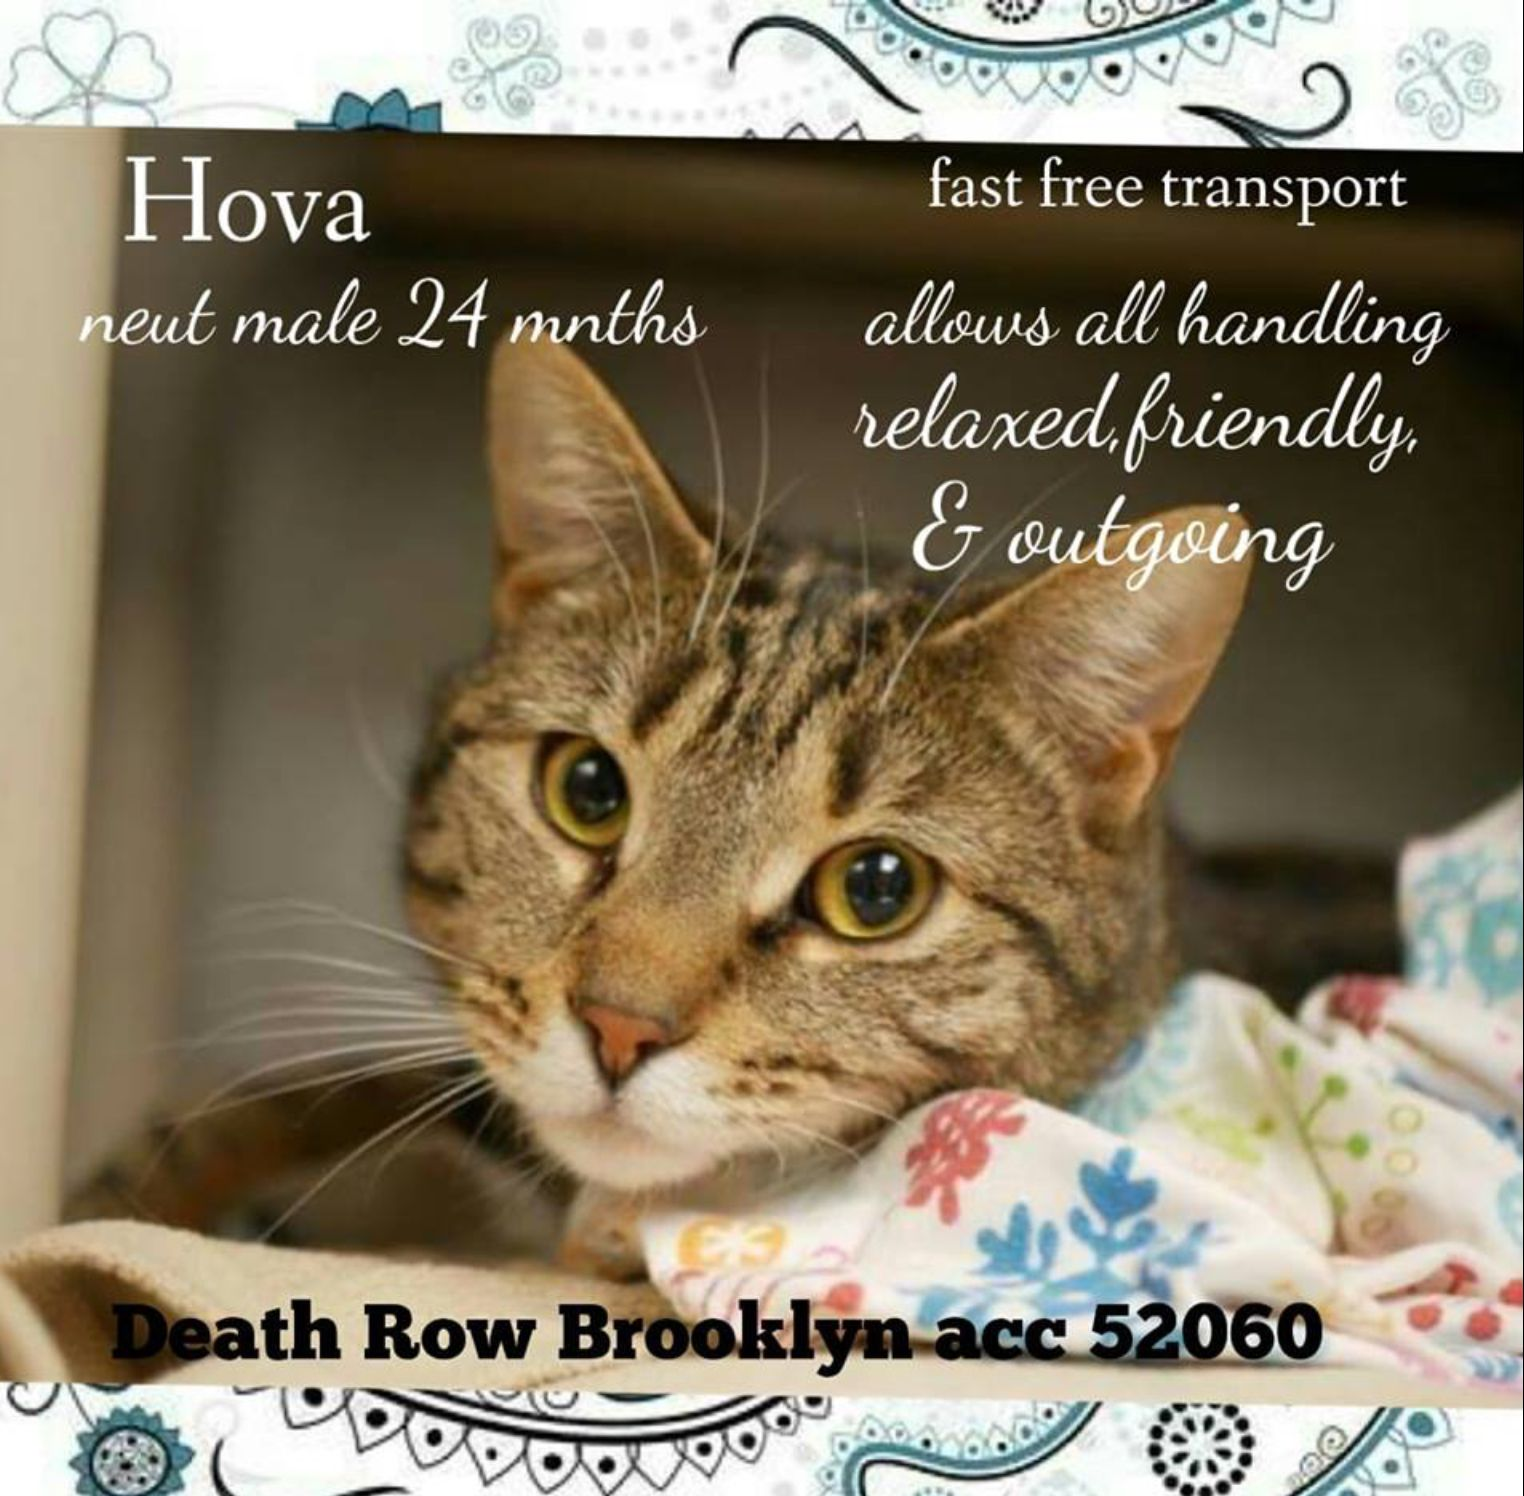 HOVA PULLED BY CATS IN THE CRADLE RESCUE💛💛01/14/19 TO